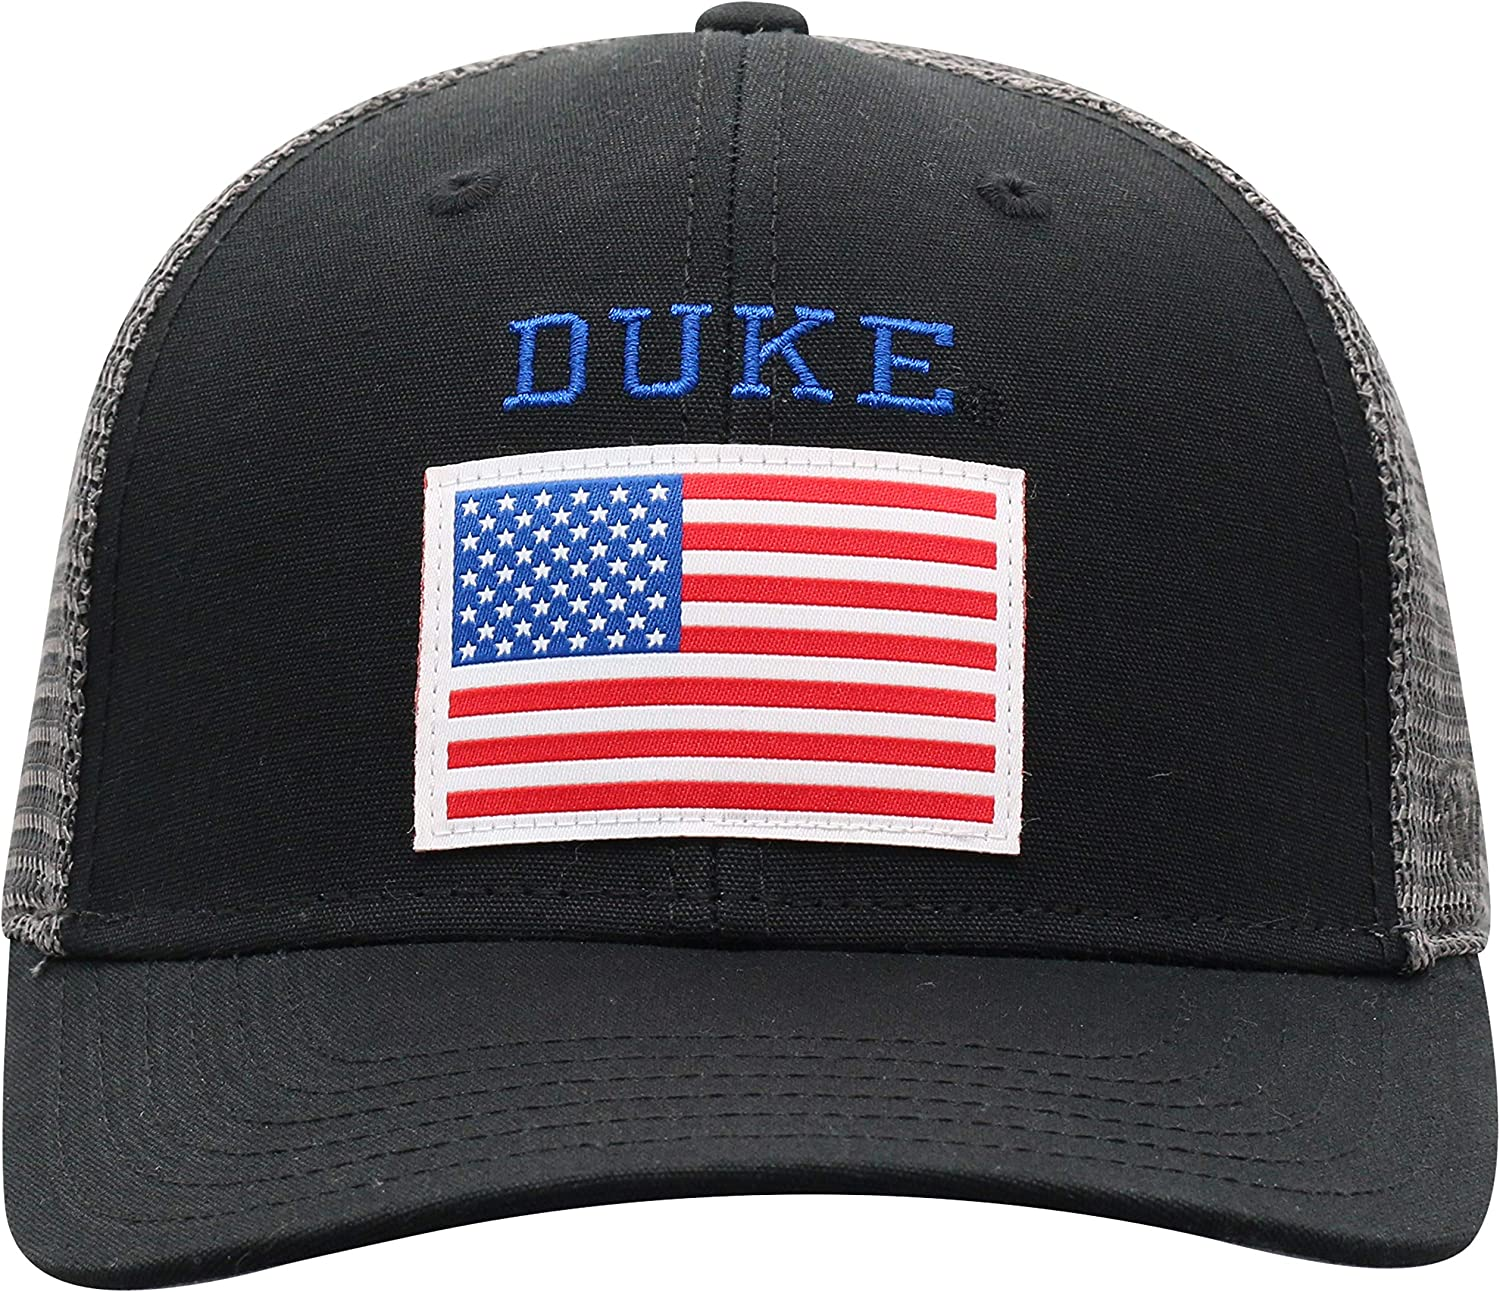 Campus Hats Duke University Blue Devils Black Back The American Flag Top Mens//Womens Mesh Trucker Baseball Adjustable Hat//Cap